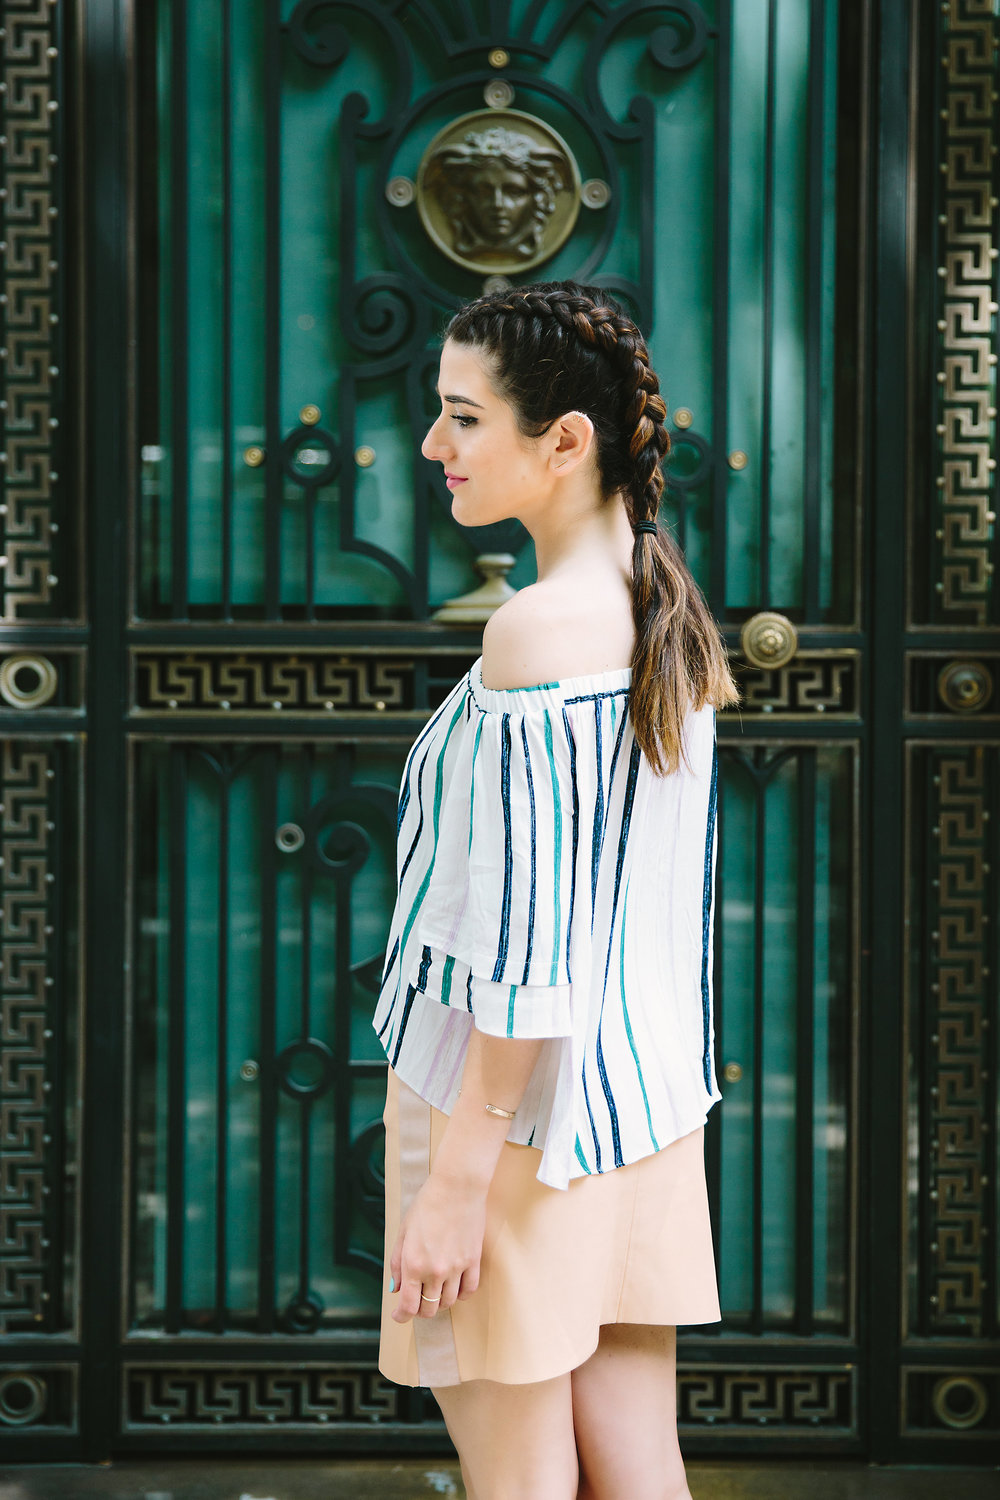 Striped Off-The-Shoulder Shoulder Top Shop Trescool Louboutins & Love Fashion Blog Esther Santer NYC Street Style Blogger Outfit OOTD Mini Skirt Pastel Pink Trendy Nude Lace Up Heels Ivanka Trump Gold Ring Hairstyle Boxer Braid Inspo Summer Photoshoot.jpg